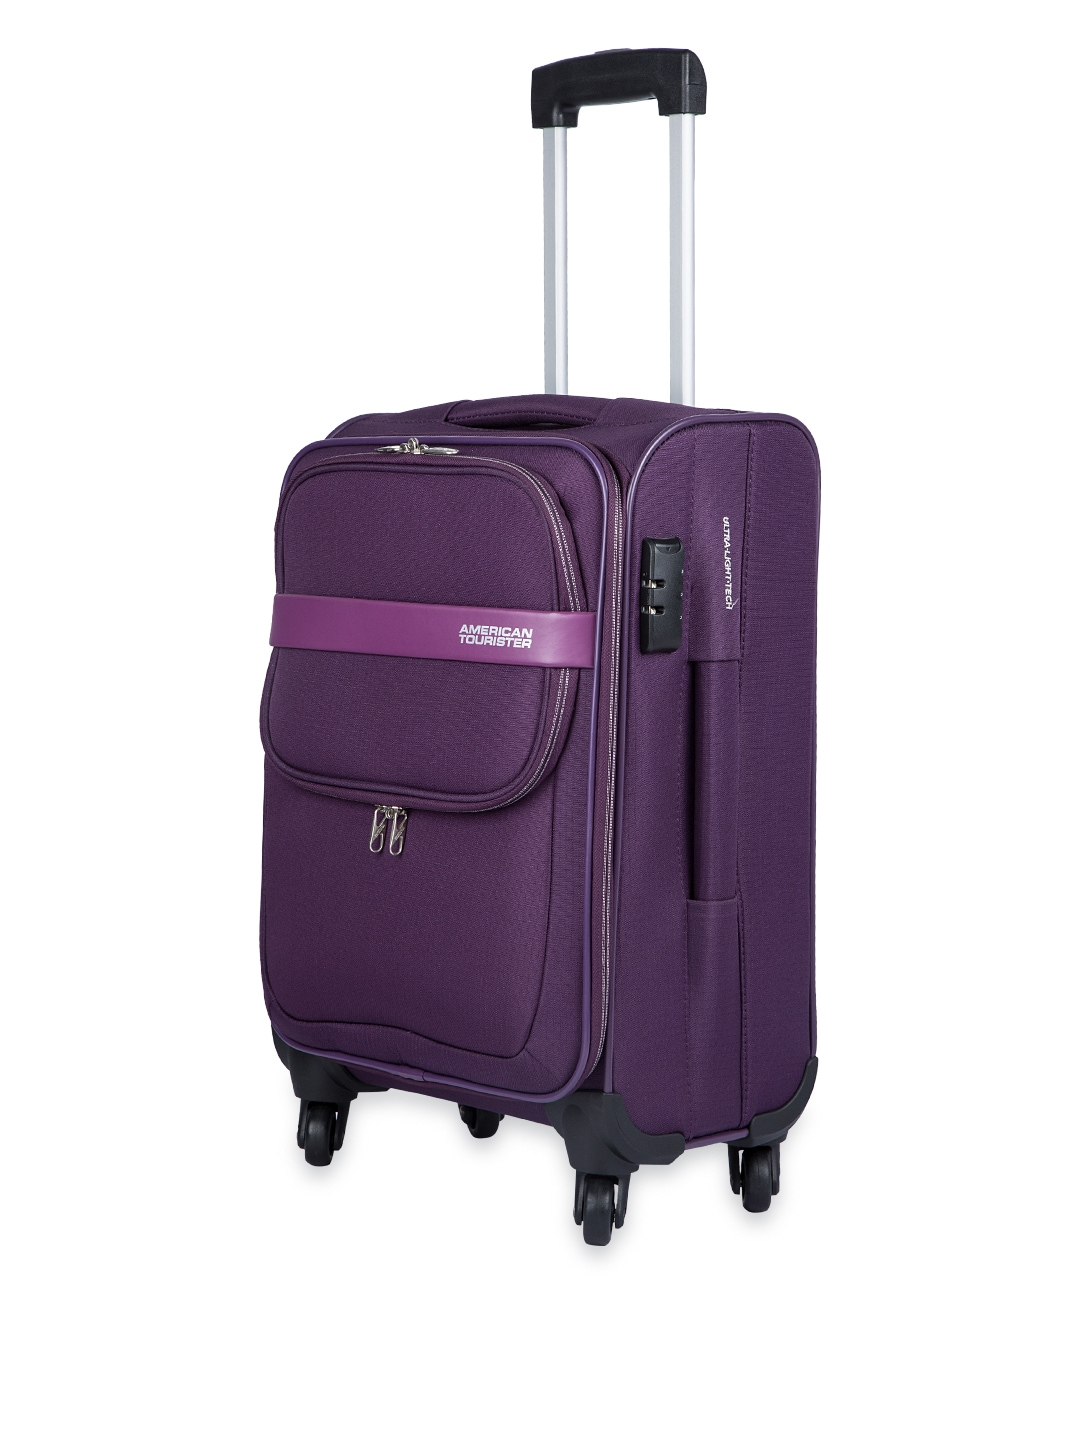 how to set number lock in american tourister suitcase